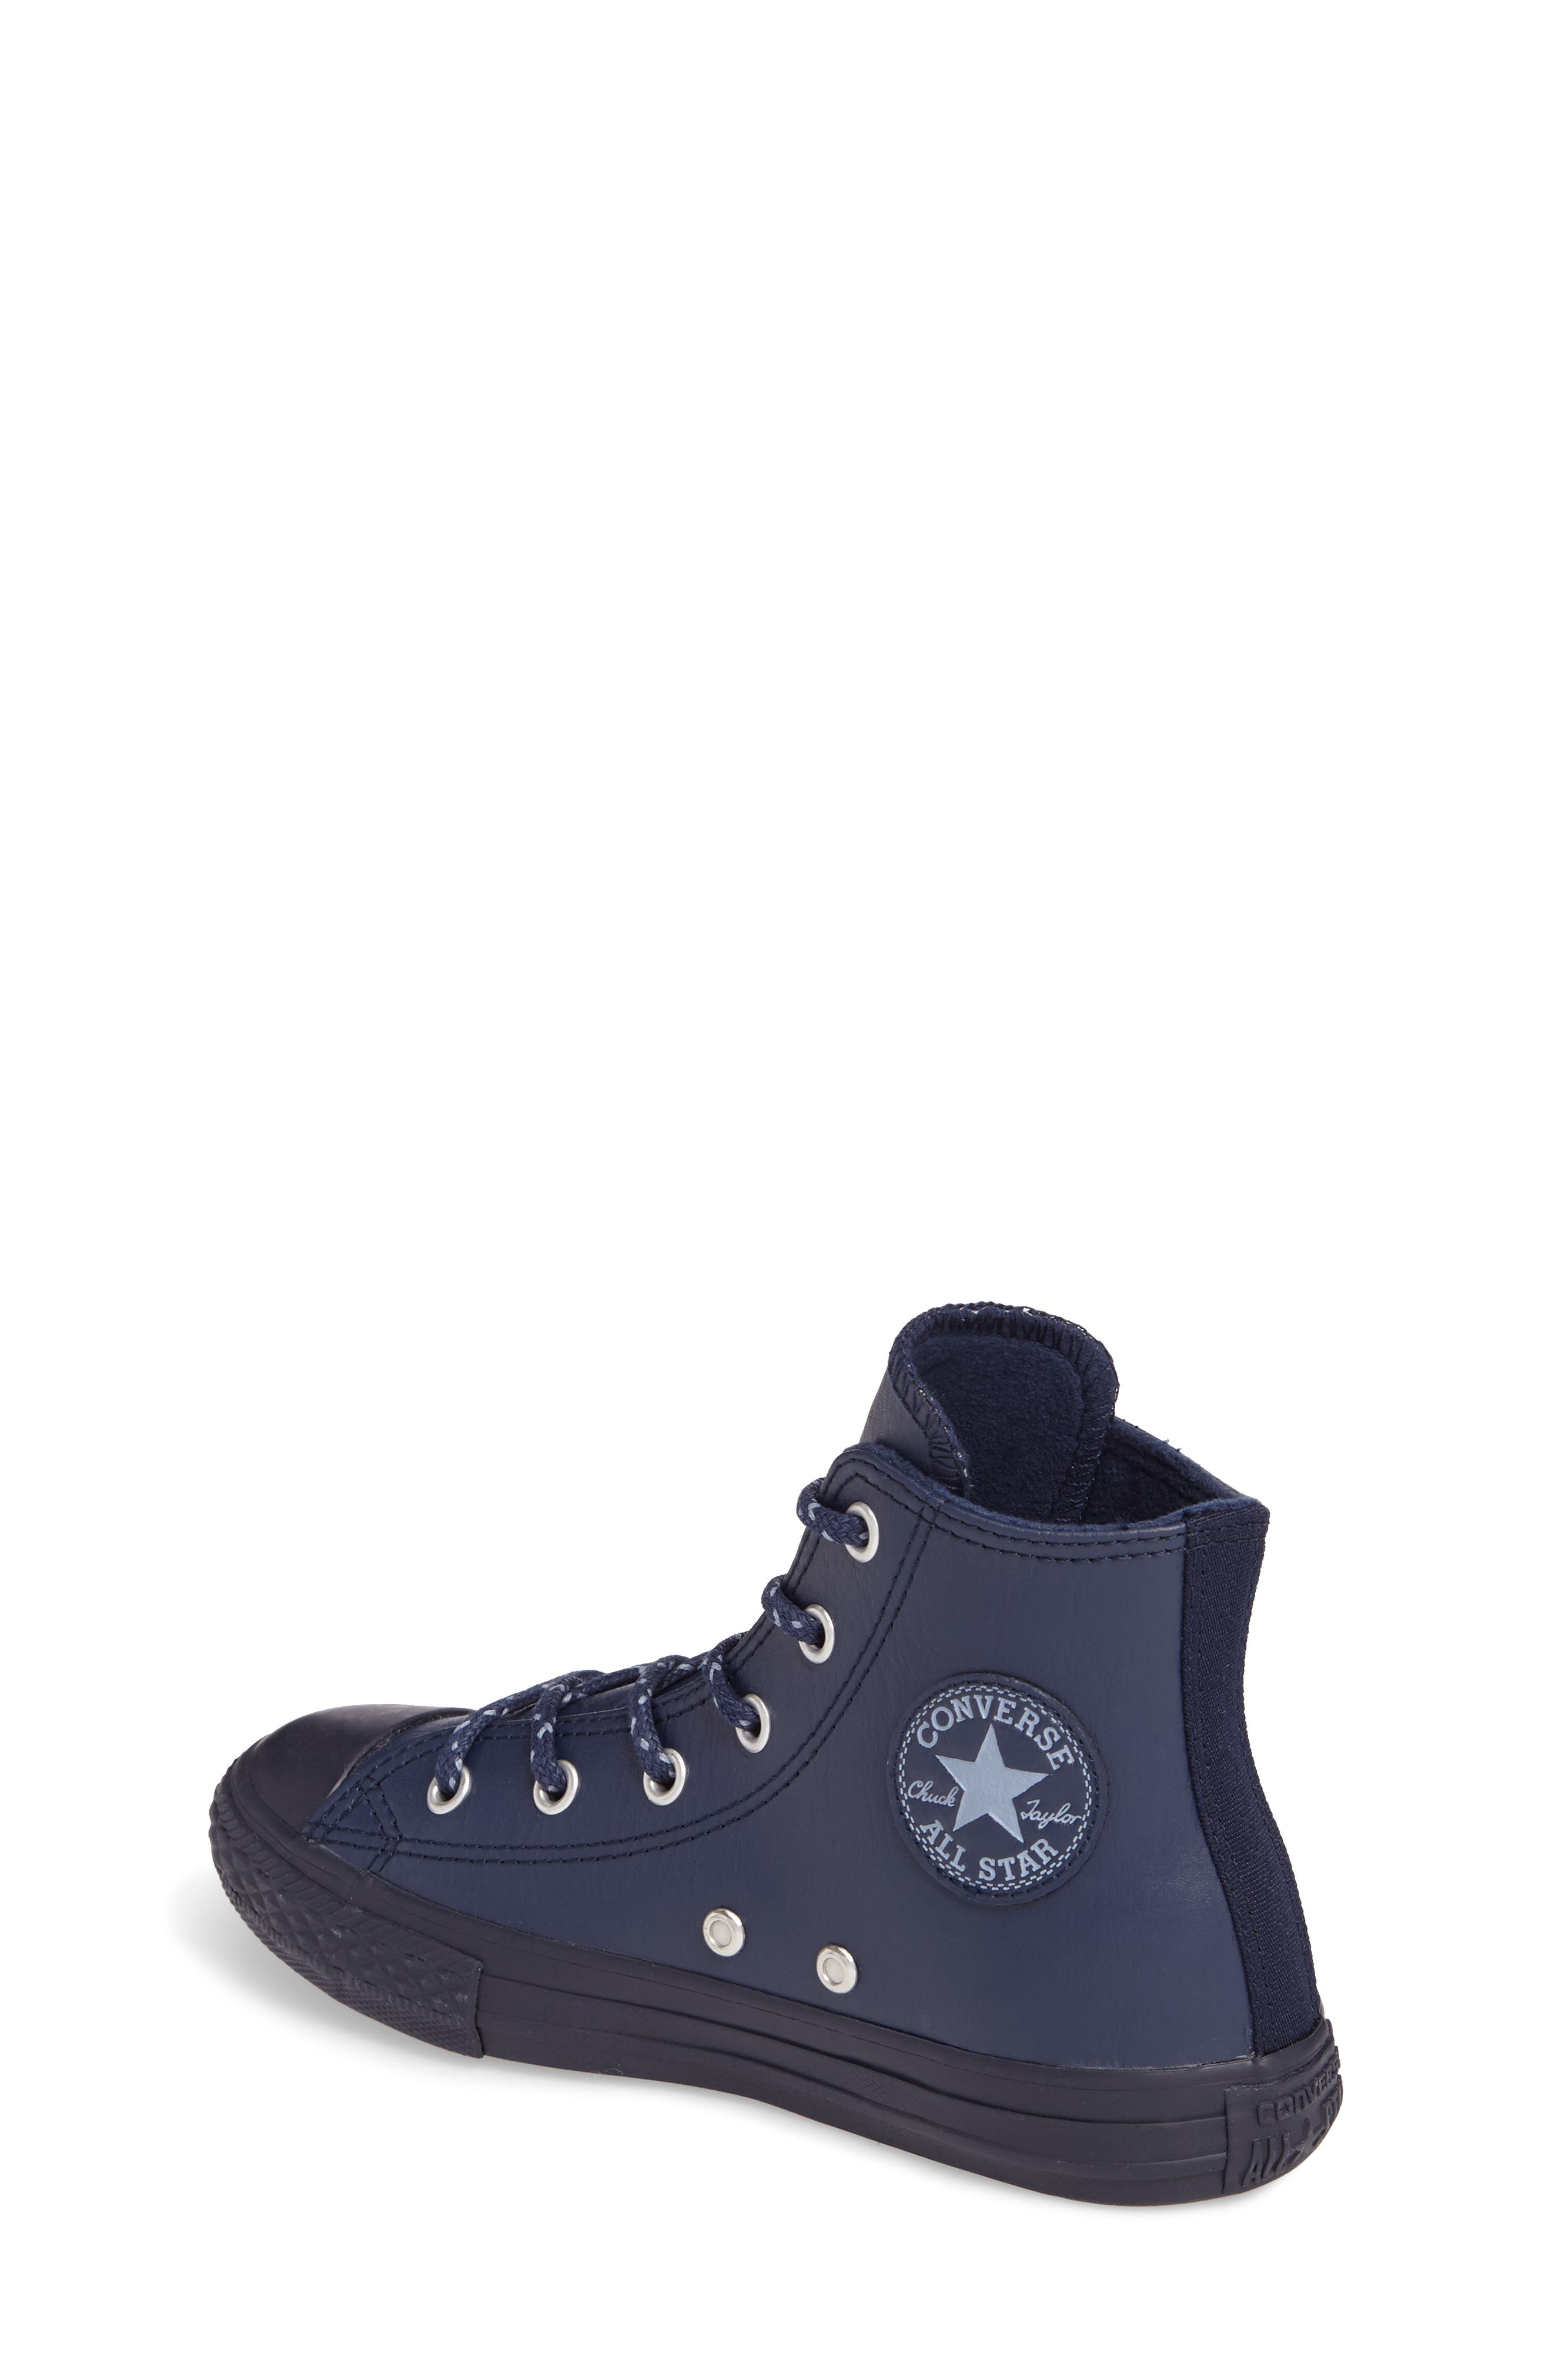 Alternate Image 2  - Converse Chuck Taylor® All Star® Leather High Top Sneaker (Toddler & Little Kid)